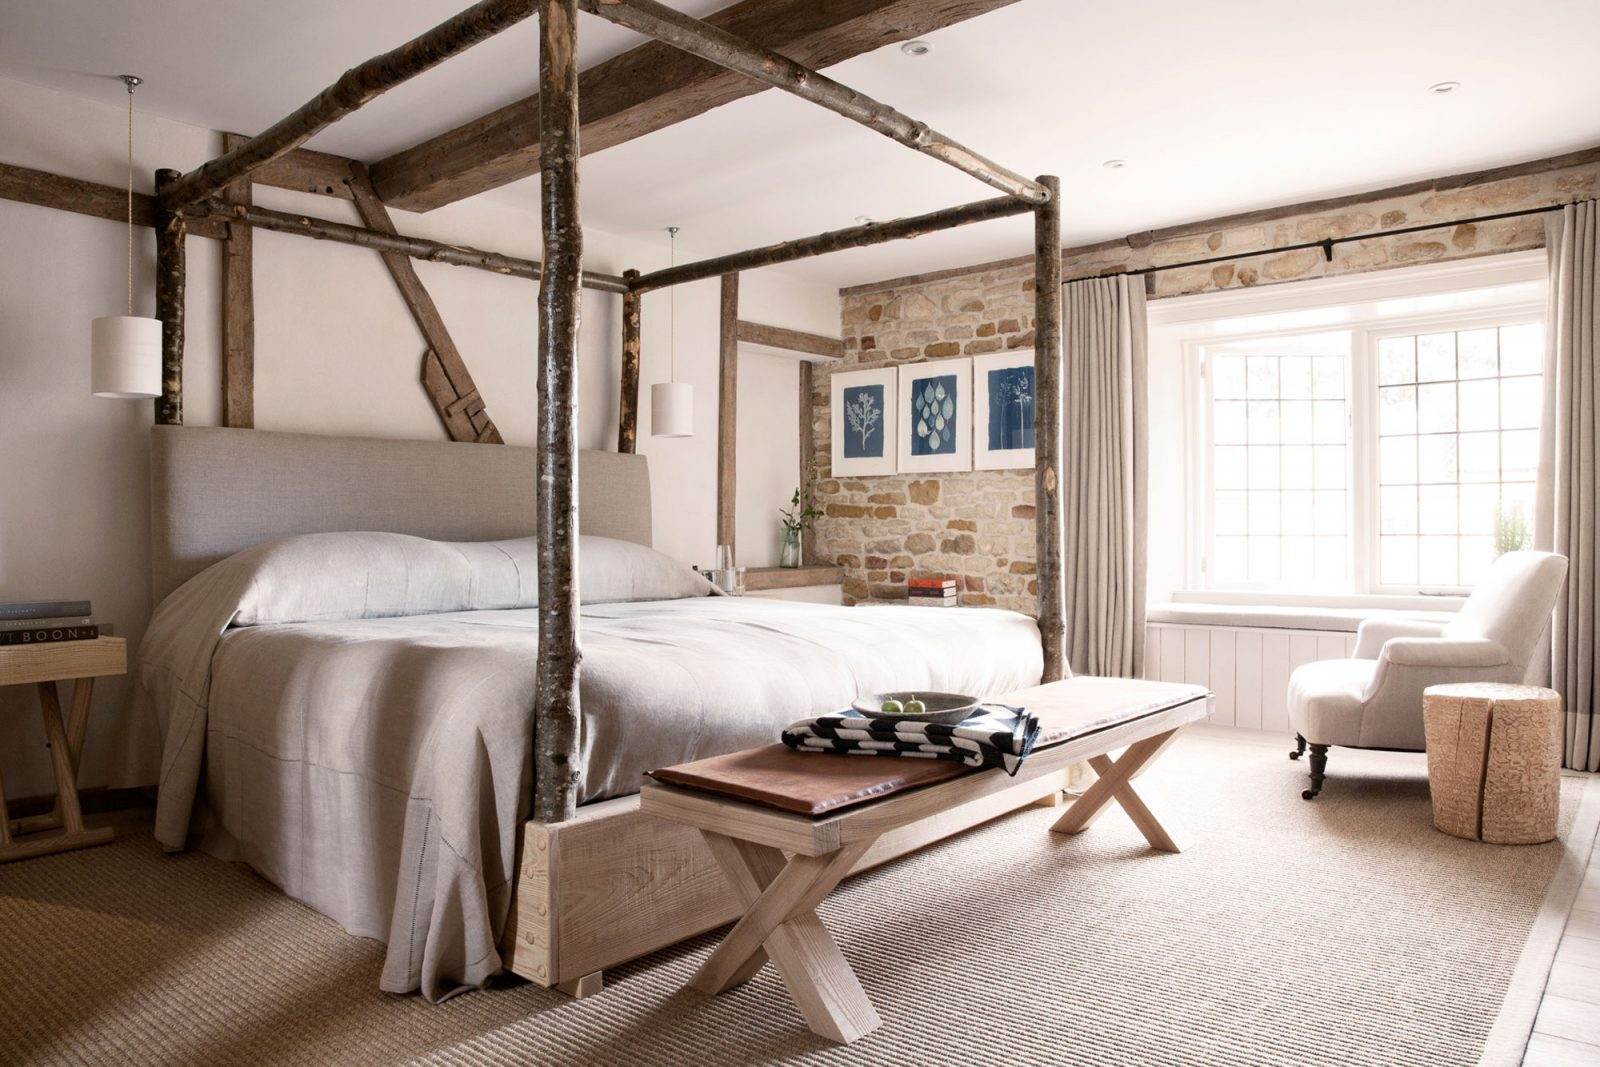 The Wild Rabbit, Kingham Pub with Rooms in Oxfordshire 15